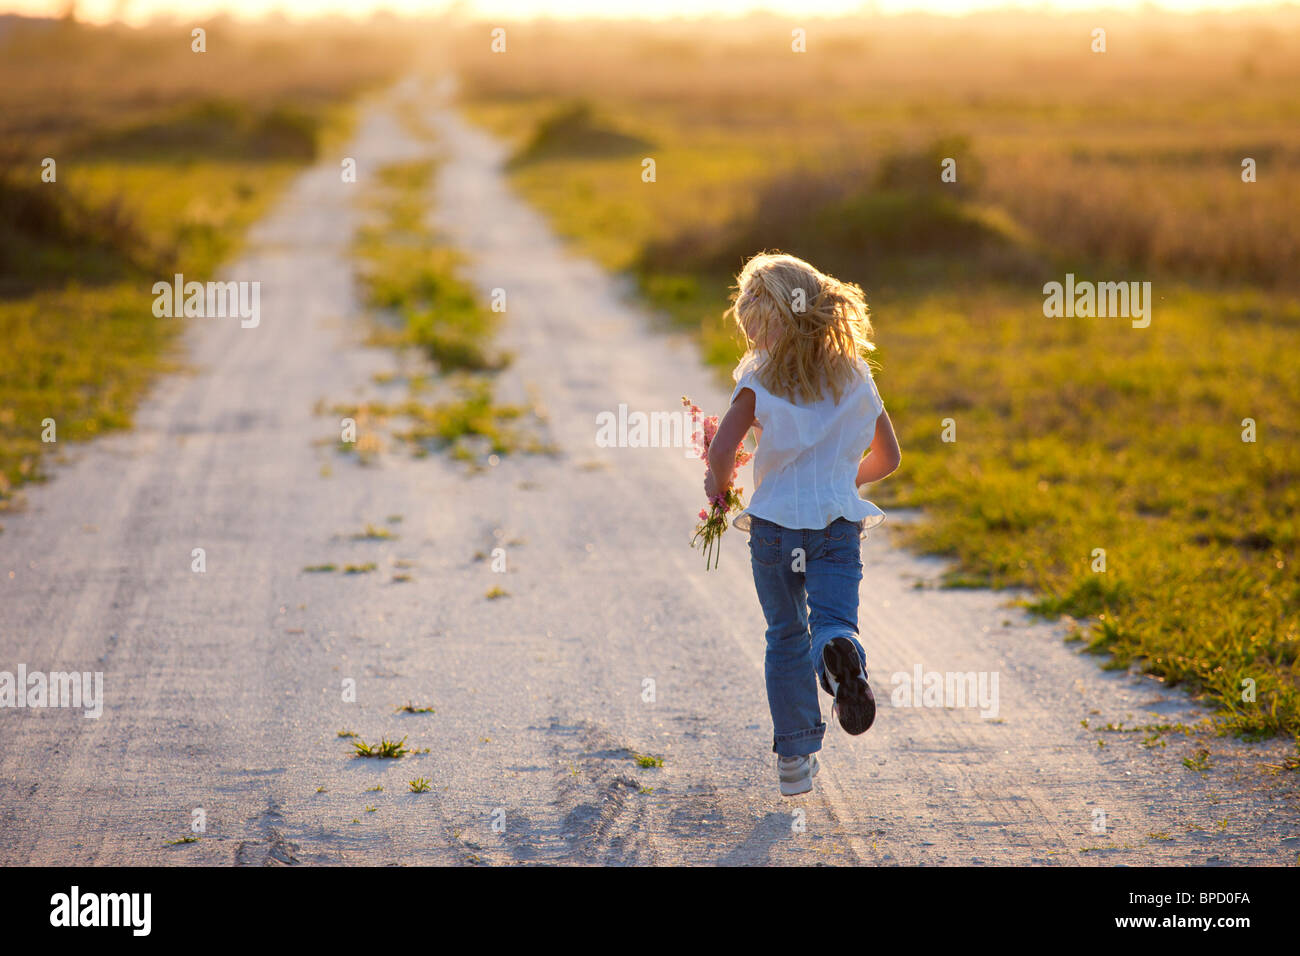 Rear view of young girl running on dirt road holding flowers - Stock Image